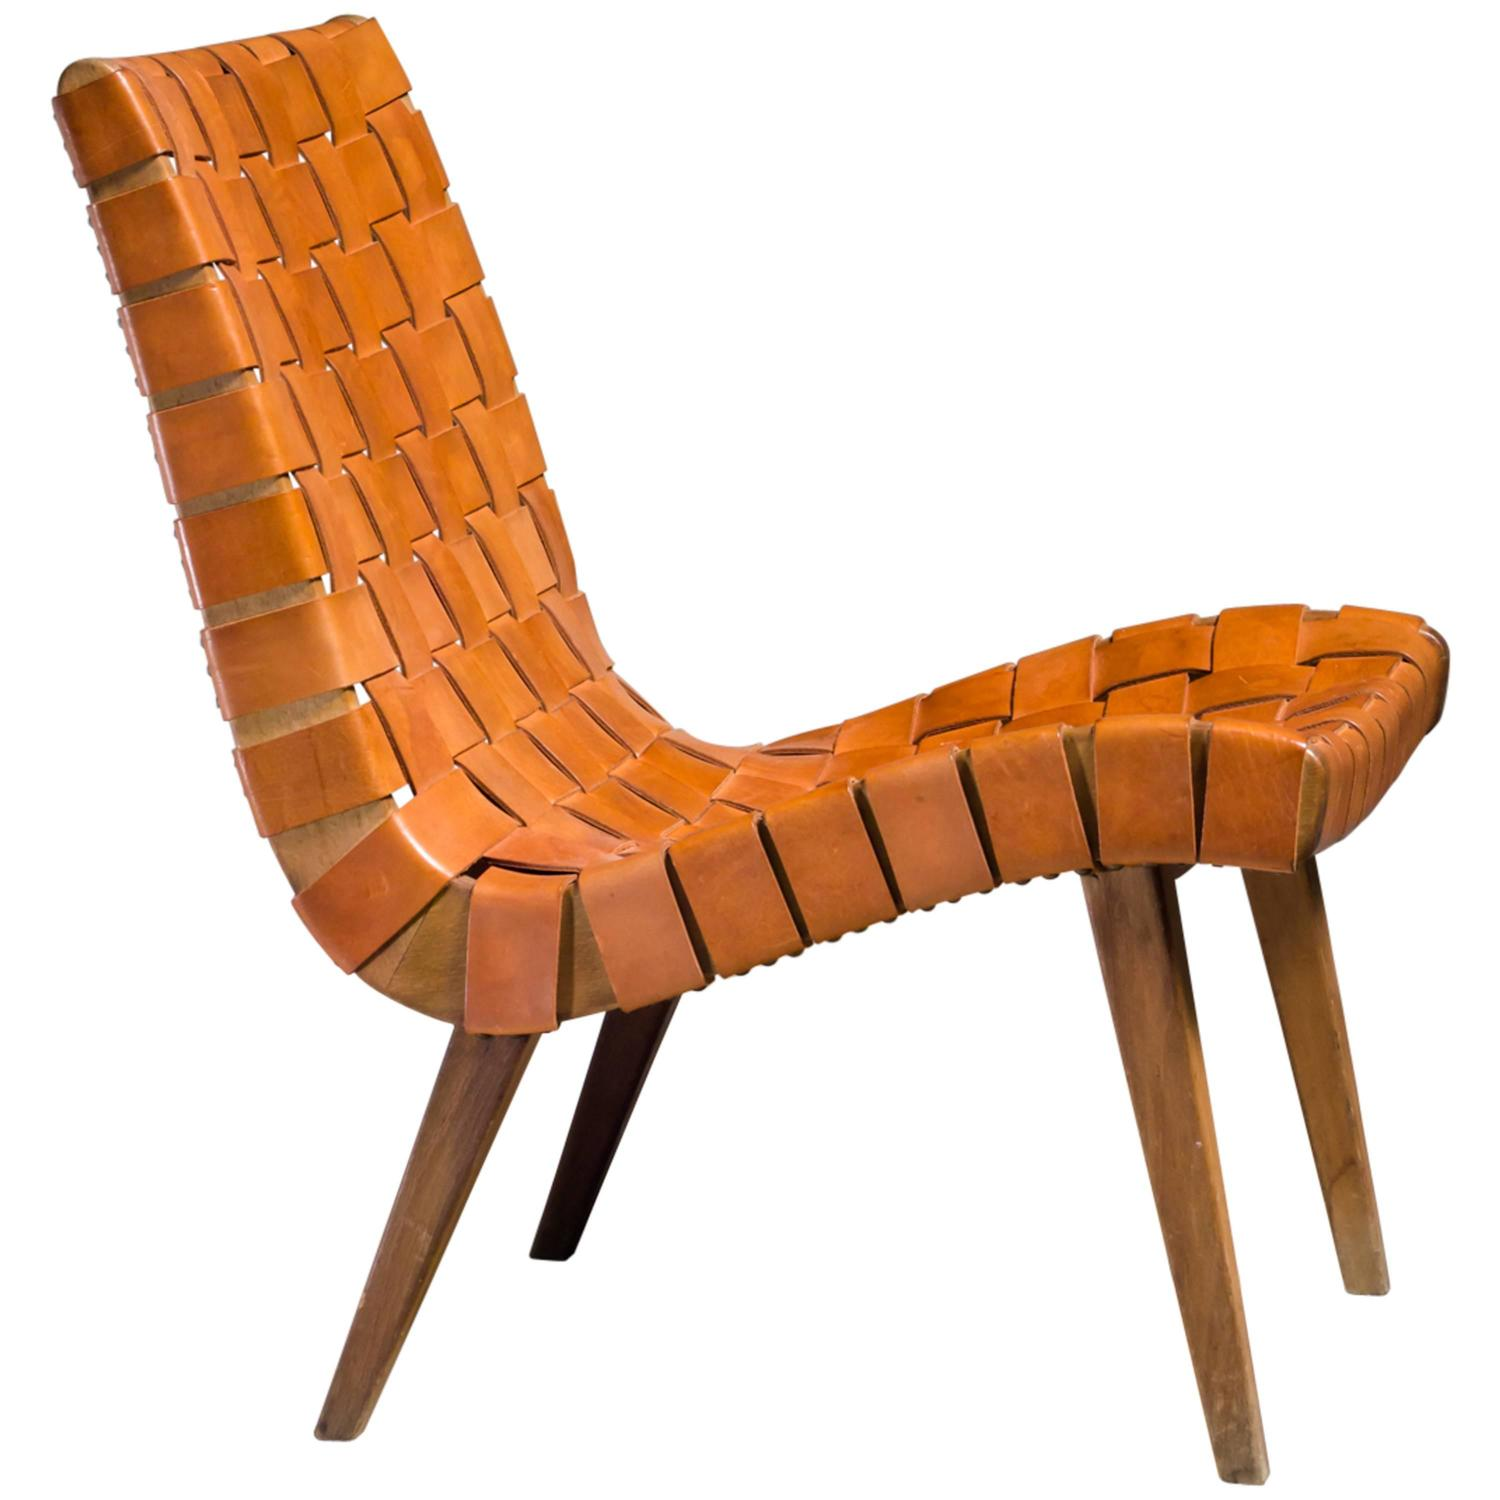 Jens Risom Side Chair Jens Risom Chair Jens Risom Lounge Chairs 74 For Sale At 1stdibs